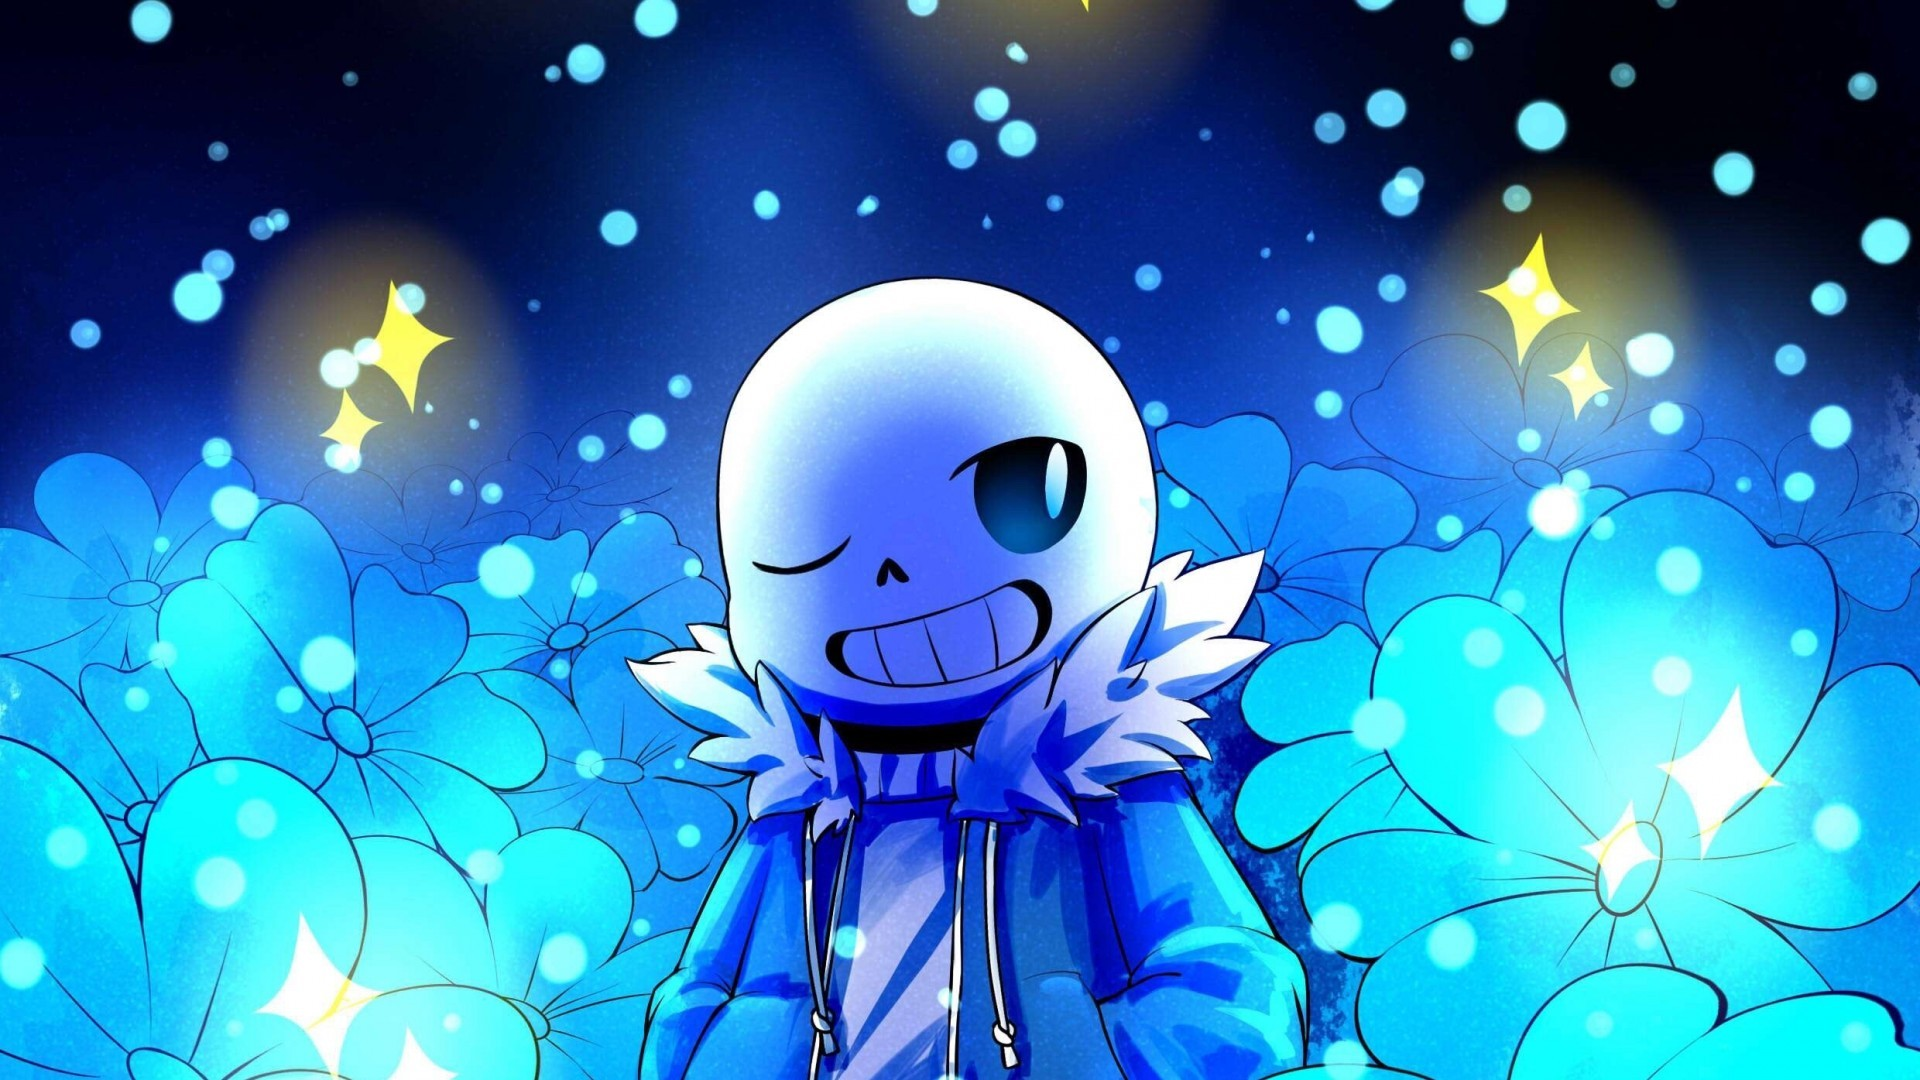 1920x1080 - Undertale Wallpaper 1920x1080 27